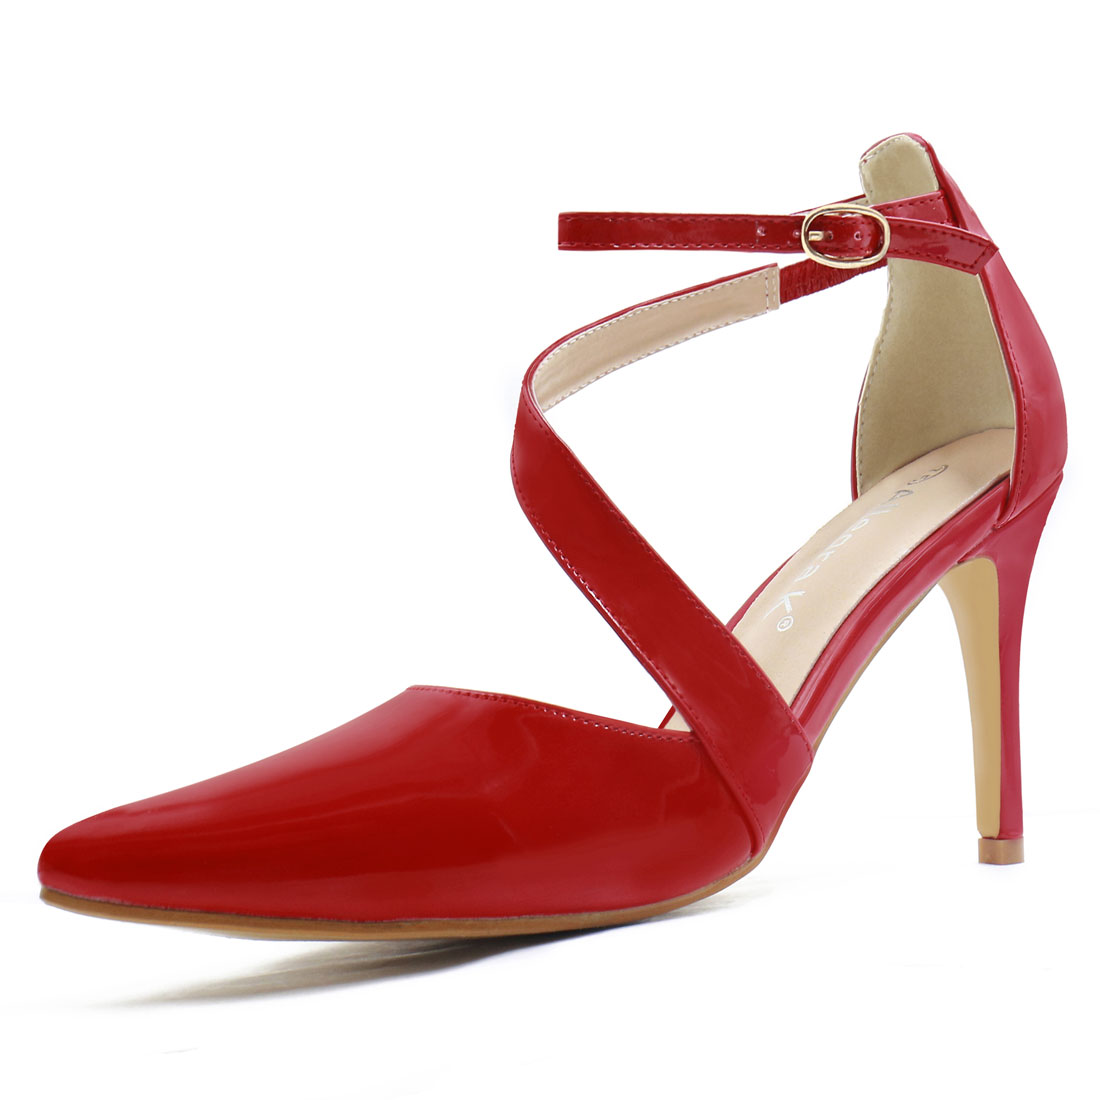 Women Asymmetrical Strap Stiletto Heel Pointy-Toe Pumps Red US 7